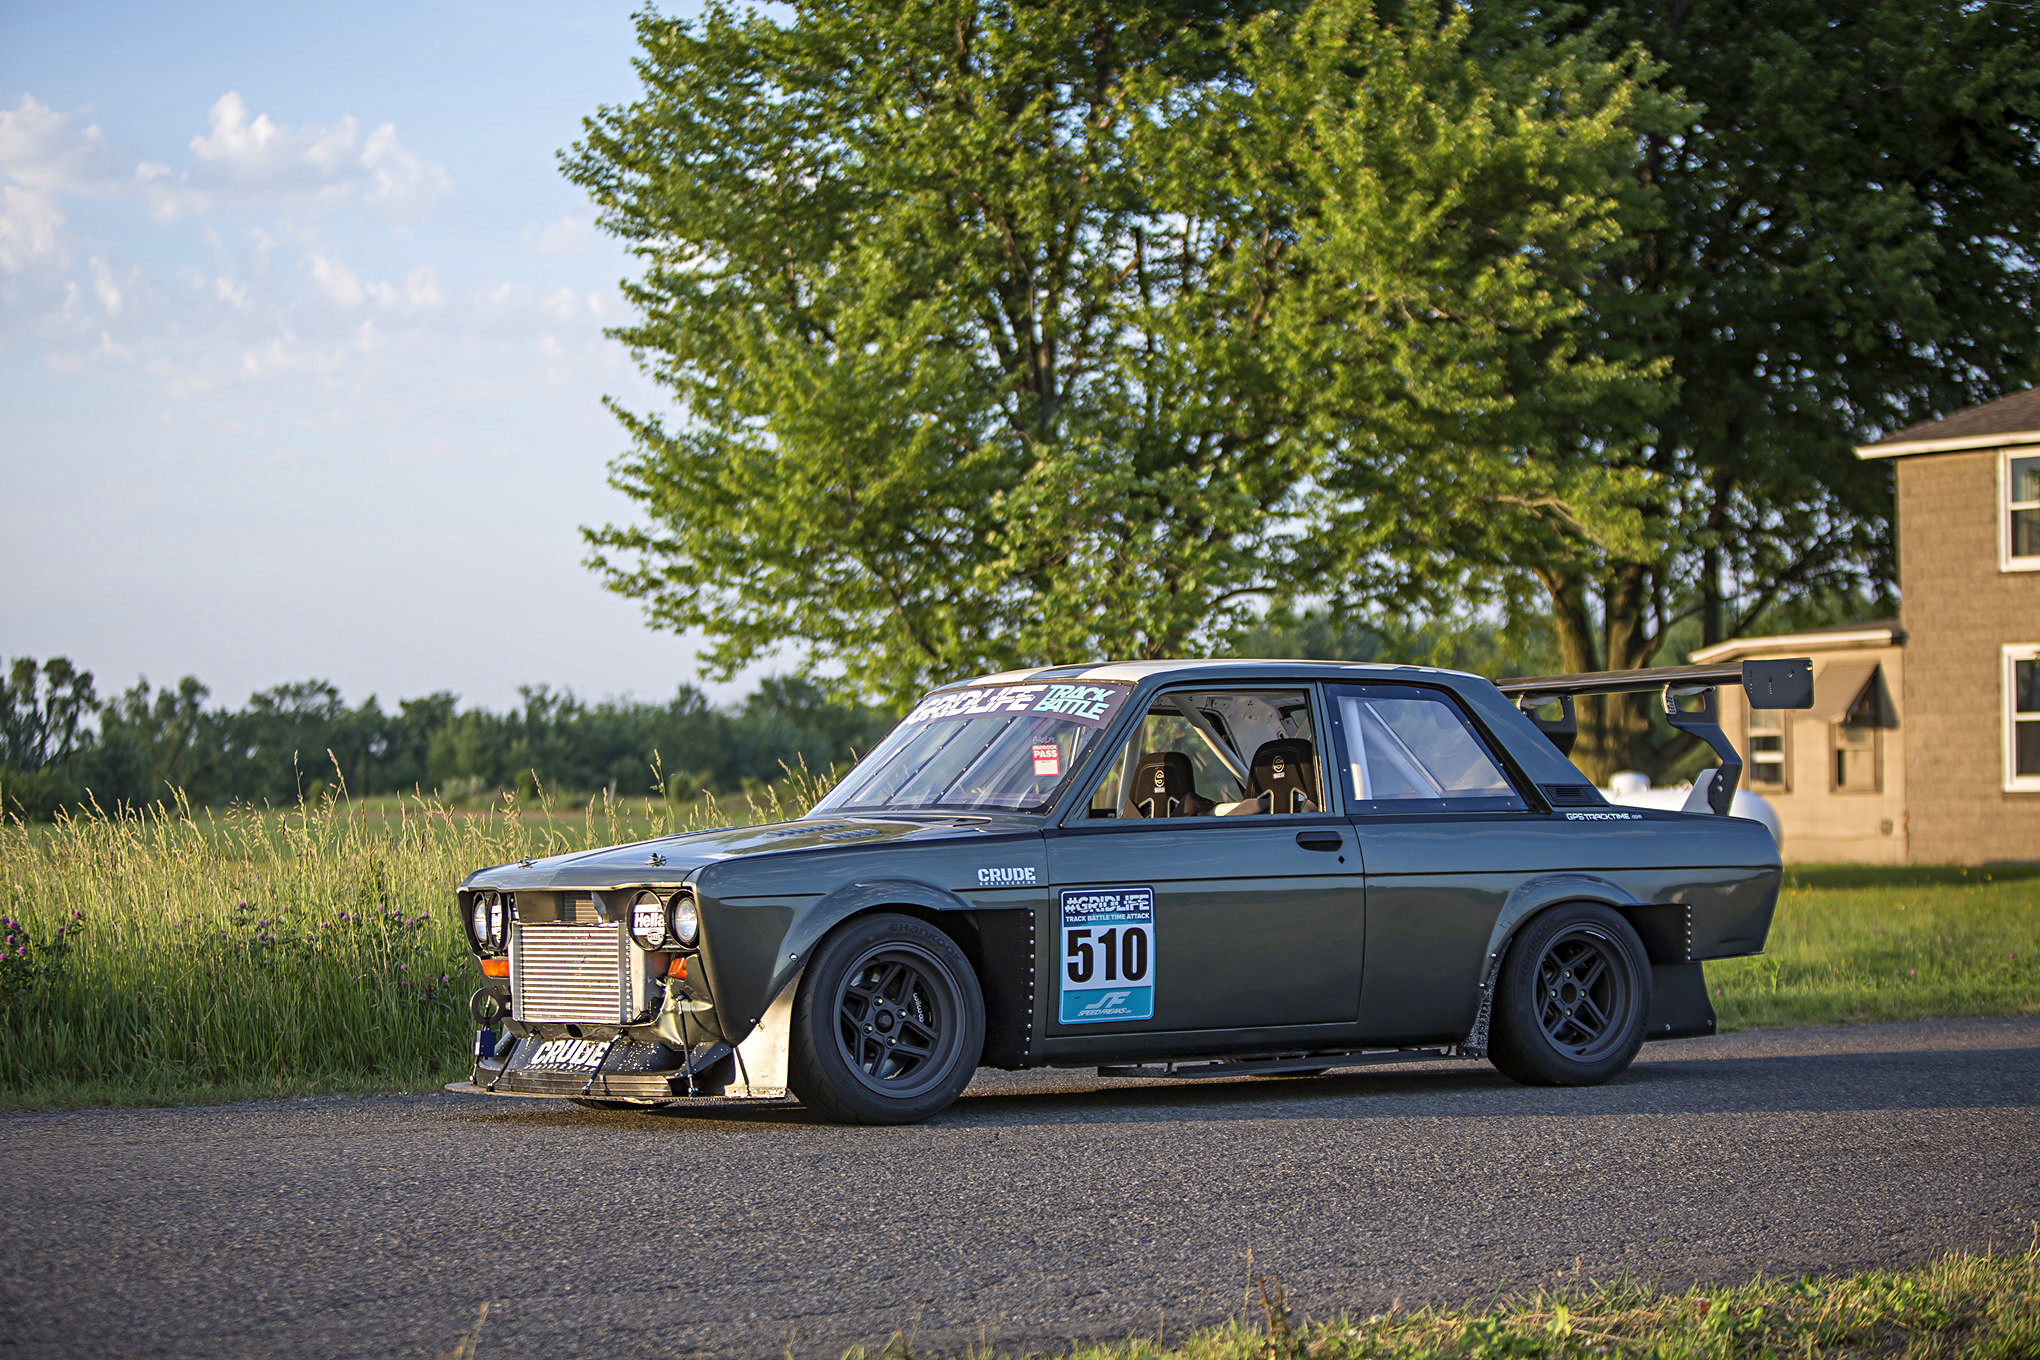 1972 Datsun 510 - About-Face